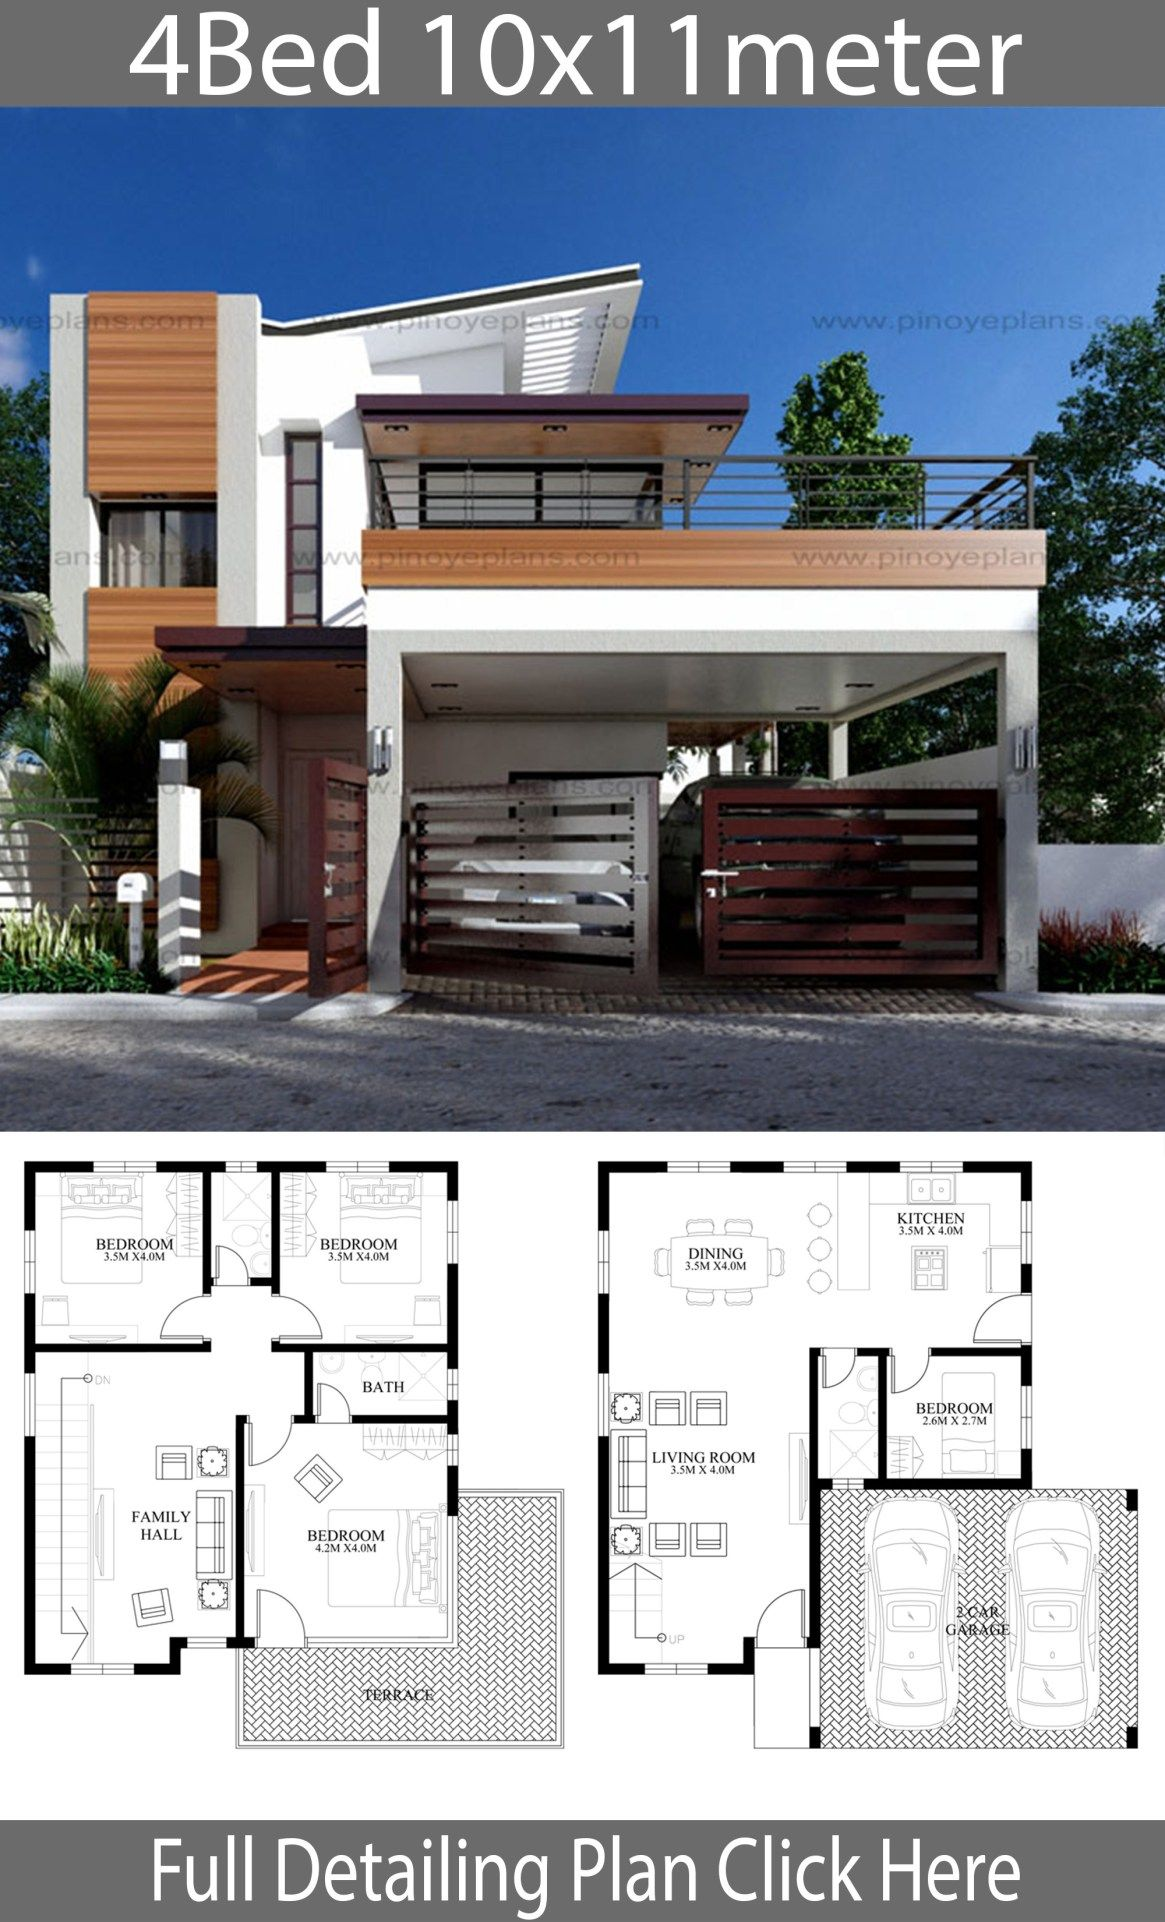 Modern Home Design 10x11m With 4 Bedrooms Home Design With Plansearch Duplex House Design 2 Storey House Design House Architecture Design